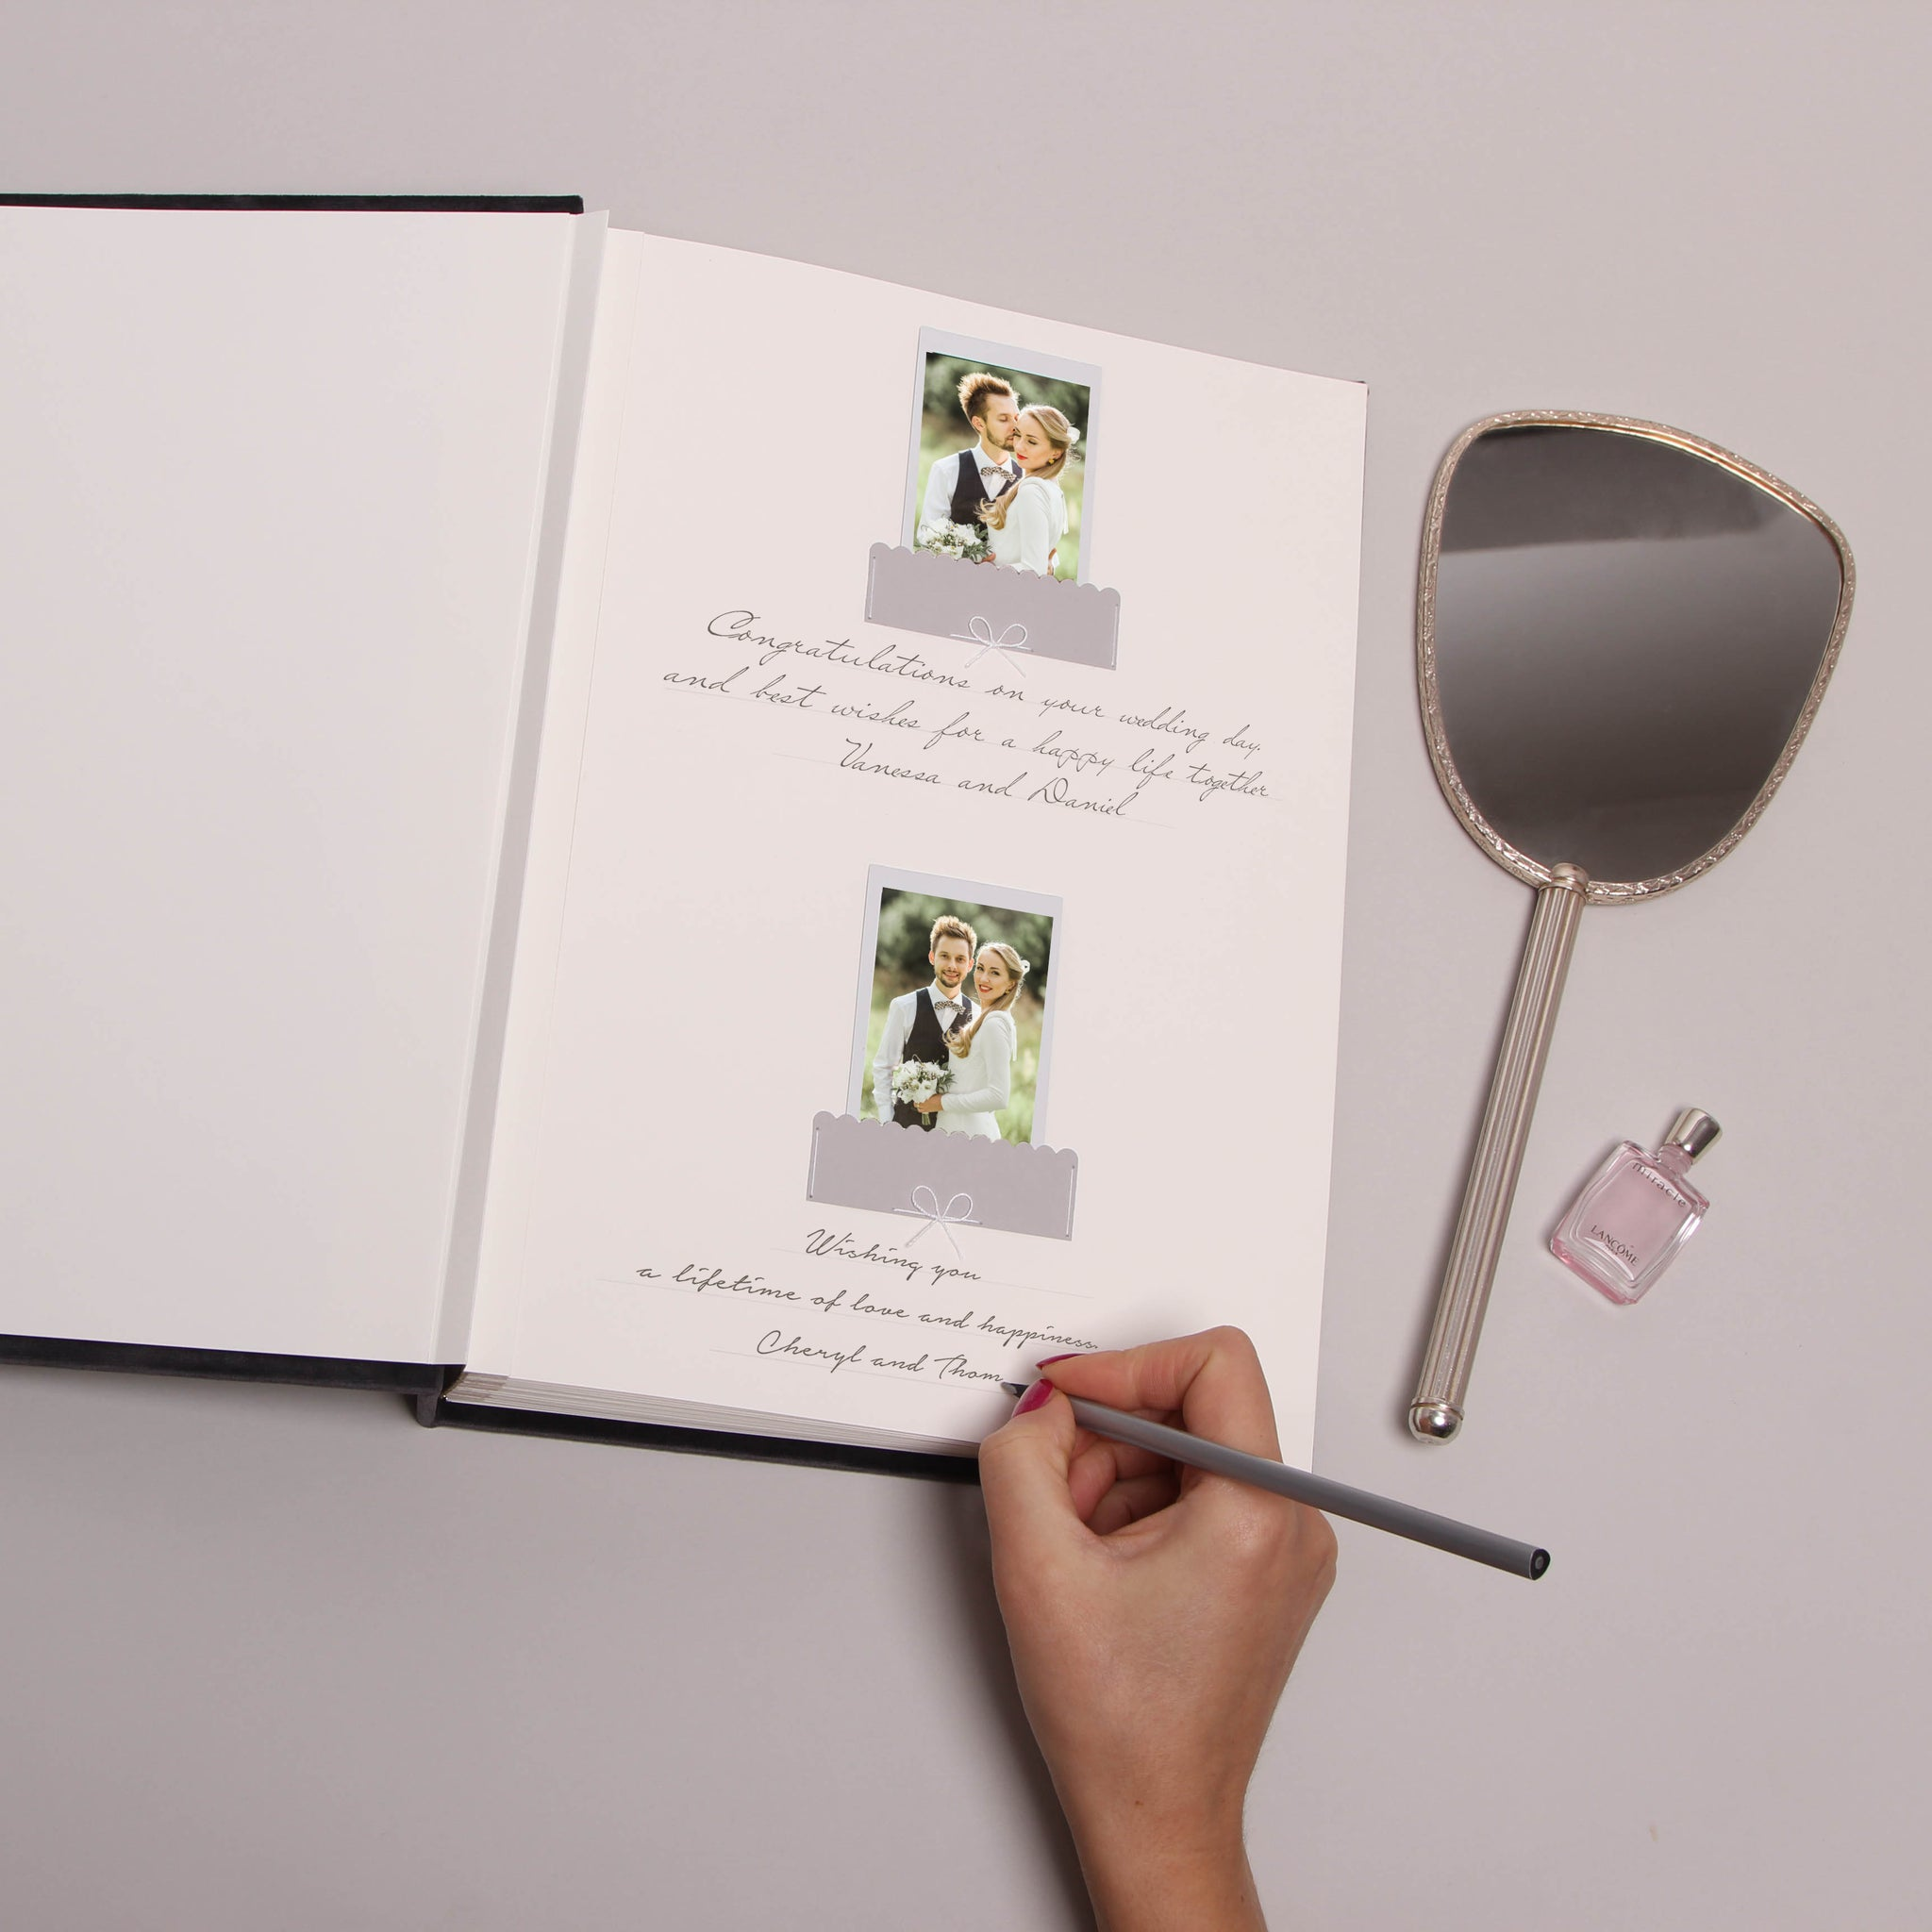 Dark Gray Velour Real Silver Foil Album With Lettering, Instax photo album by Liumy - Liumy